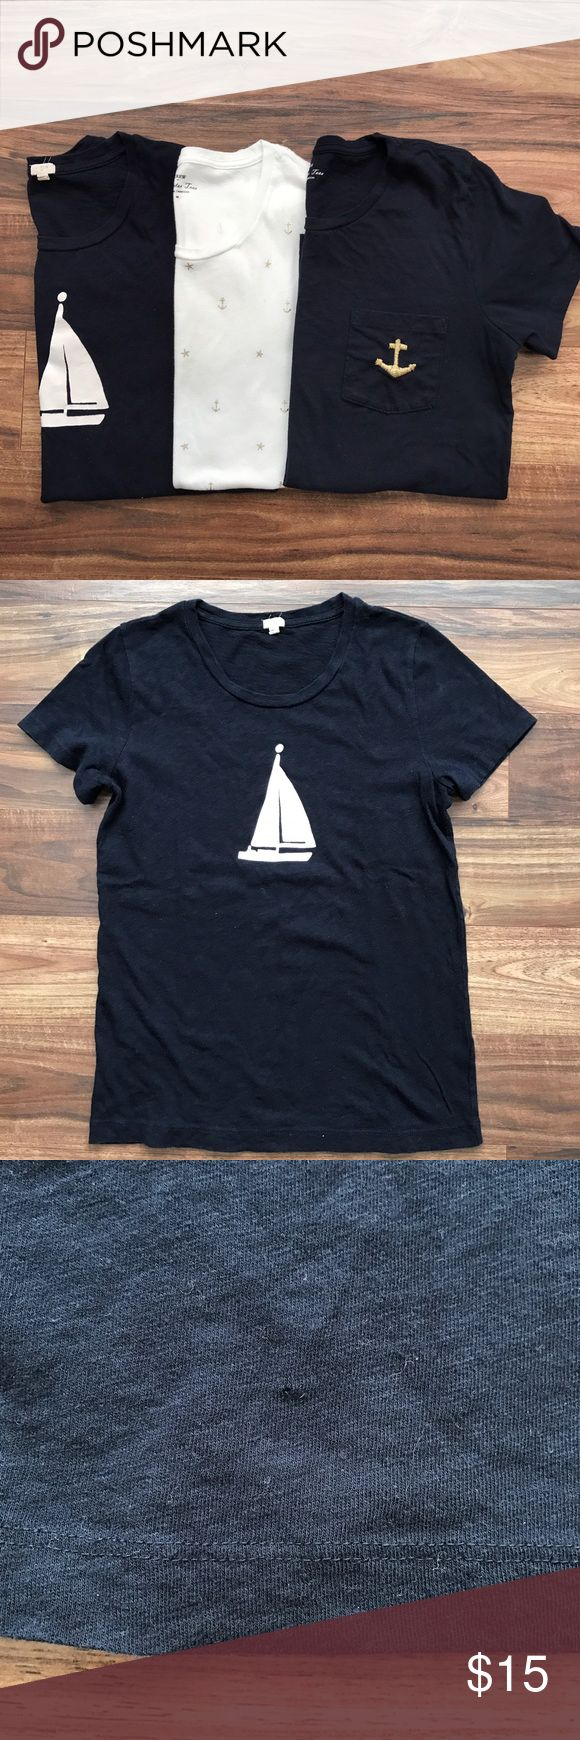 J Crew Nautical Tee Shirts Set of 3 well loved J Crew Nautical themed tee shirts.  The first is solid navy with a white sailboat.  There is a very small hole on the bottom near the hem and some pilling, shown in the pictures.  The second is ivory with gold foil anchors and stars.  There is a small pull near a star on the chest and some pilling, shown in the pictures.  The last is a darker solid navy with an embroidered gold anchor on a chest pocket.  Again, well loved but still cute to throw…